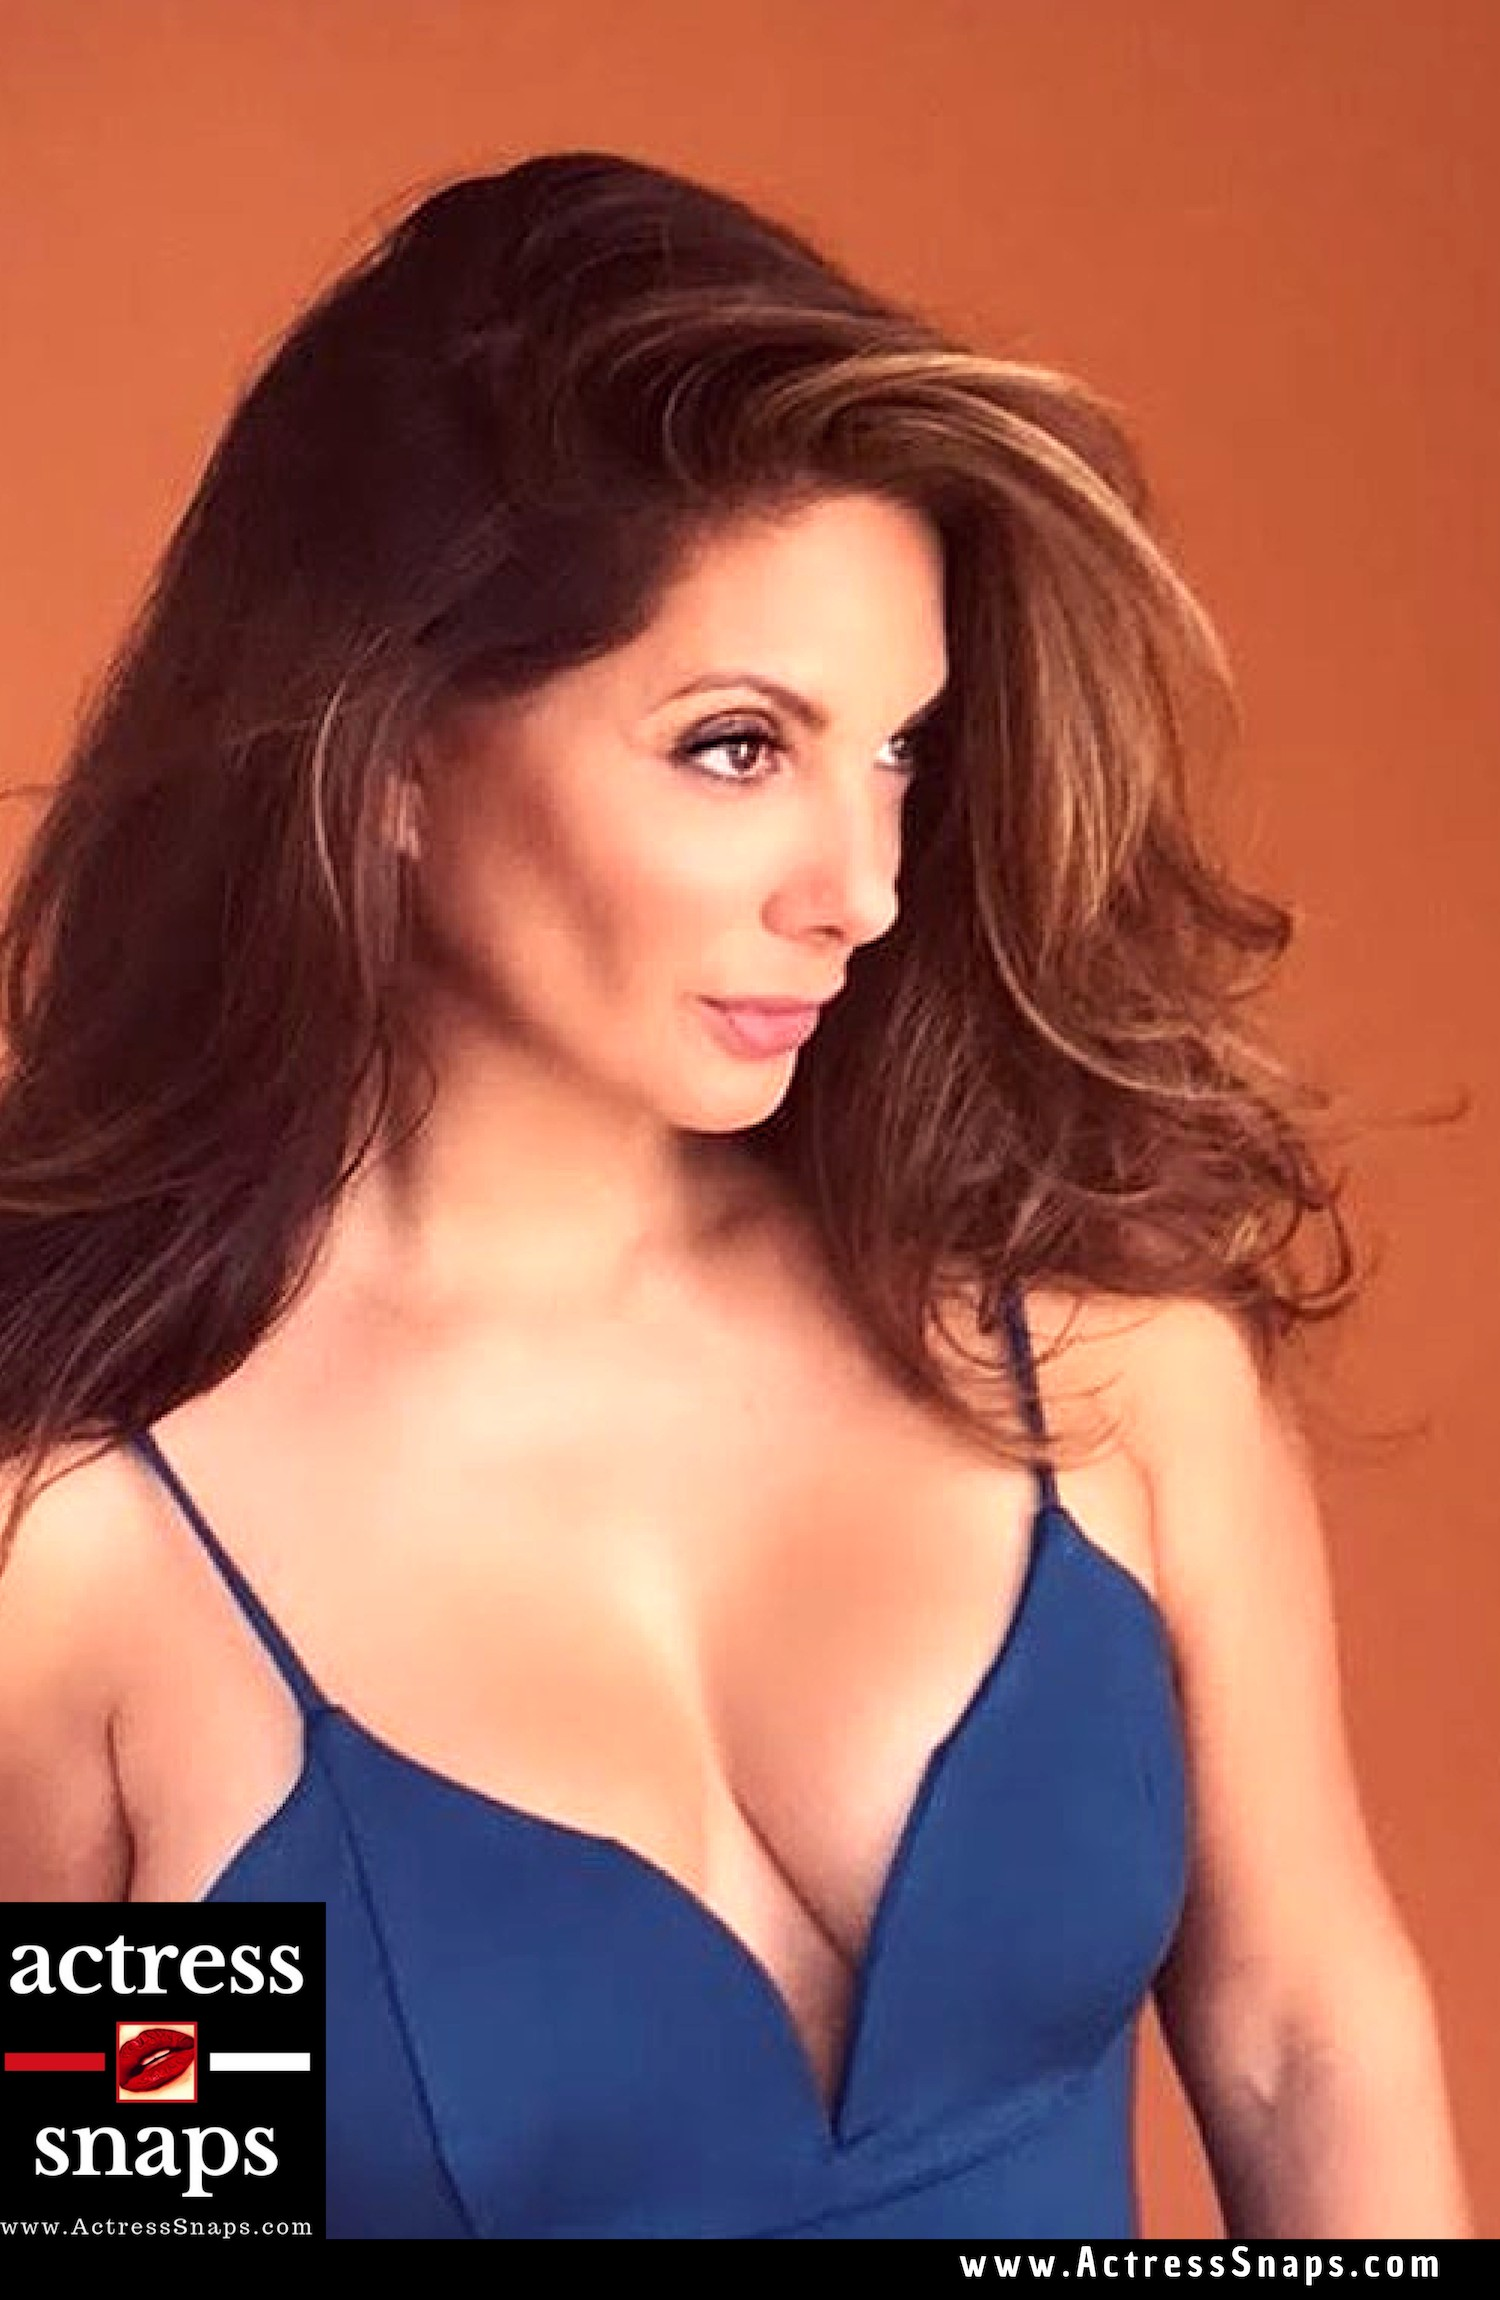 Sexy Alex Meneses Photos Collection - Sexy Actress Pictures | Hot Actress Pictures - ActressSnaps.com